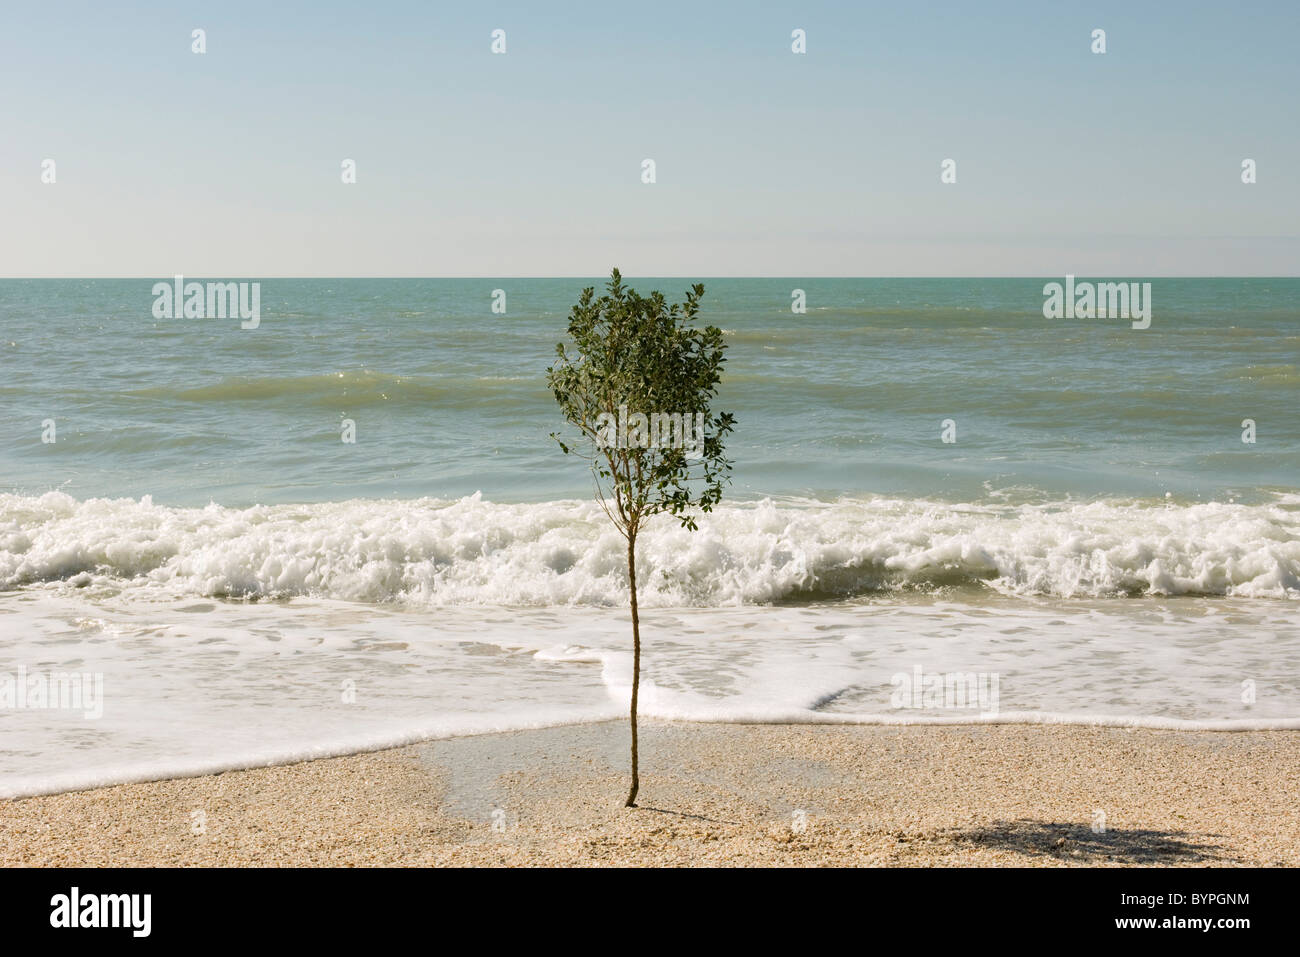 Solitary tree growing on beach near water's edge - Stock Image